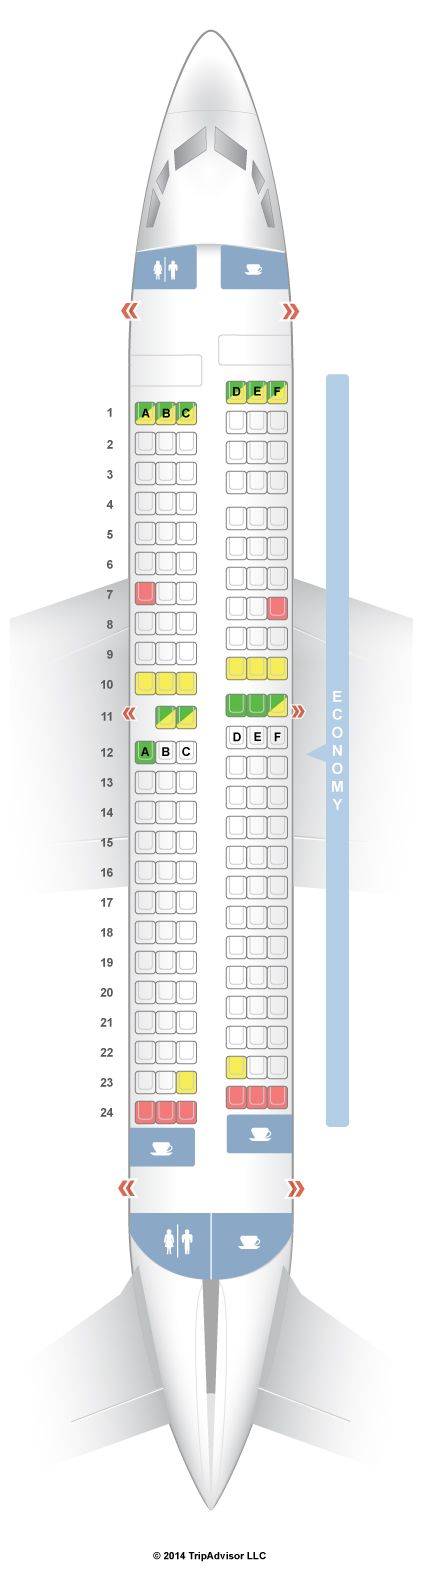 Seatguru Seat Map Southwest Boeing 737 700